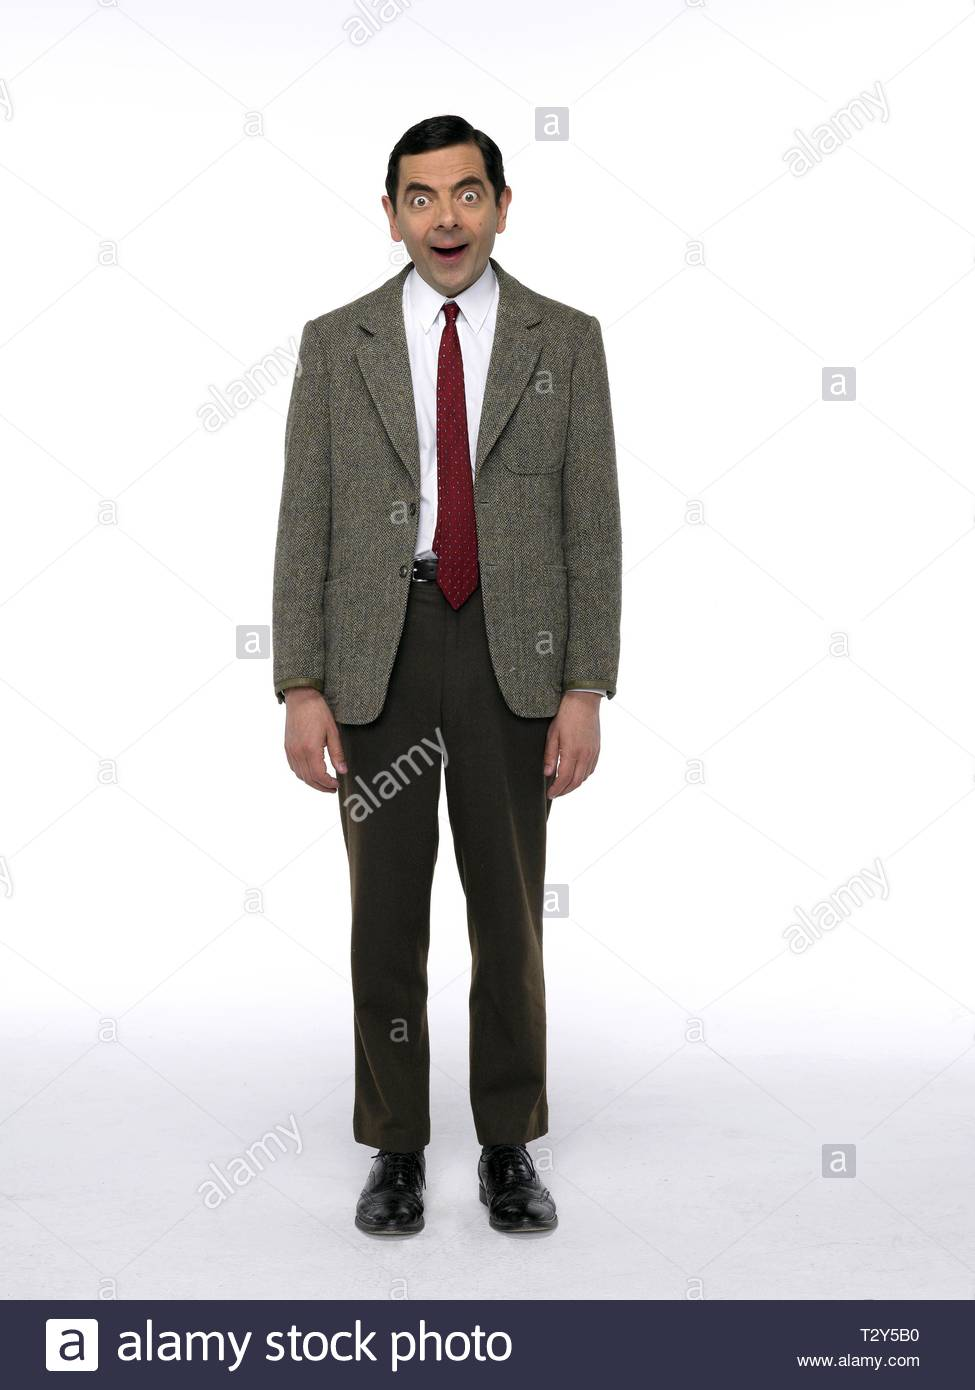 Mr Bean Stock Photos & Mr Bean Stock Images - Page 3 - Alamy